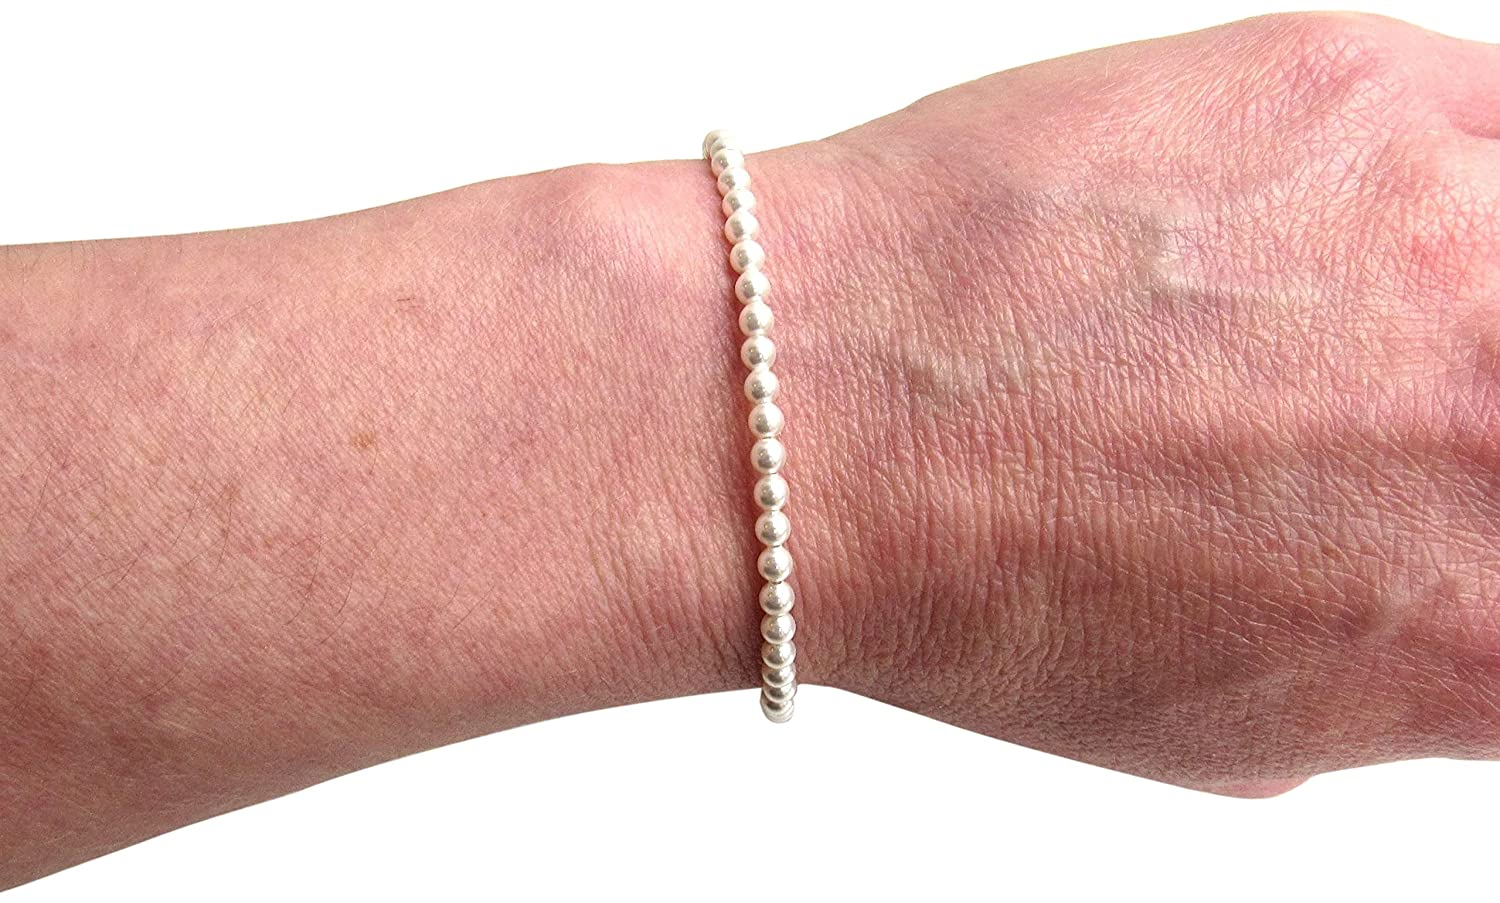 Seed Pearl Elegant Bracelet Minimalist New mail order Jewelry an Choice Size of